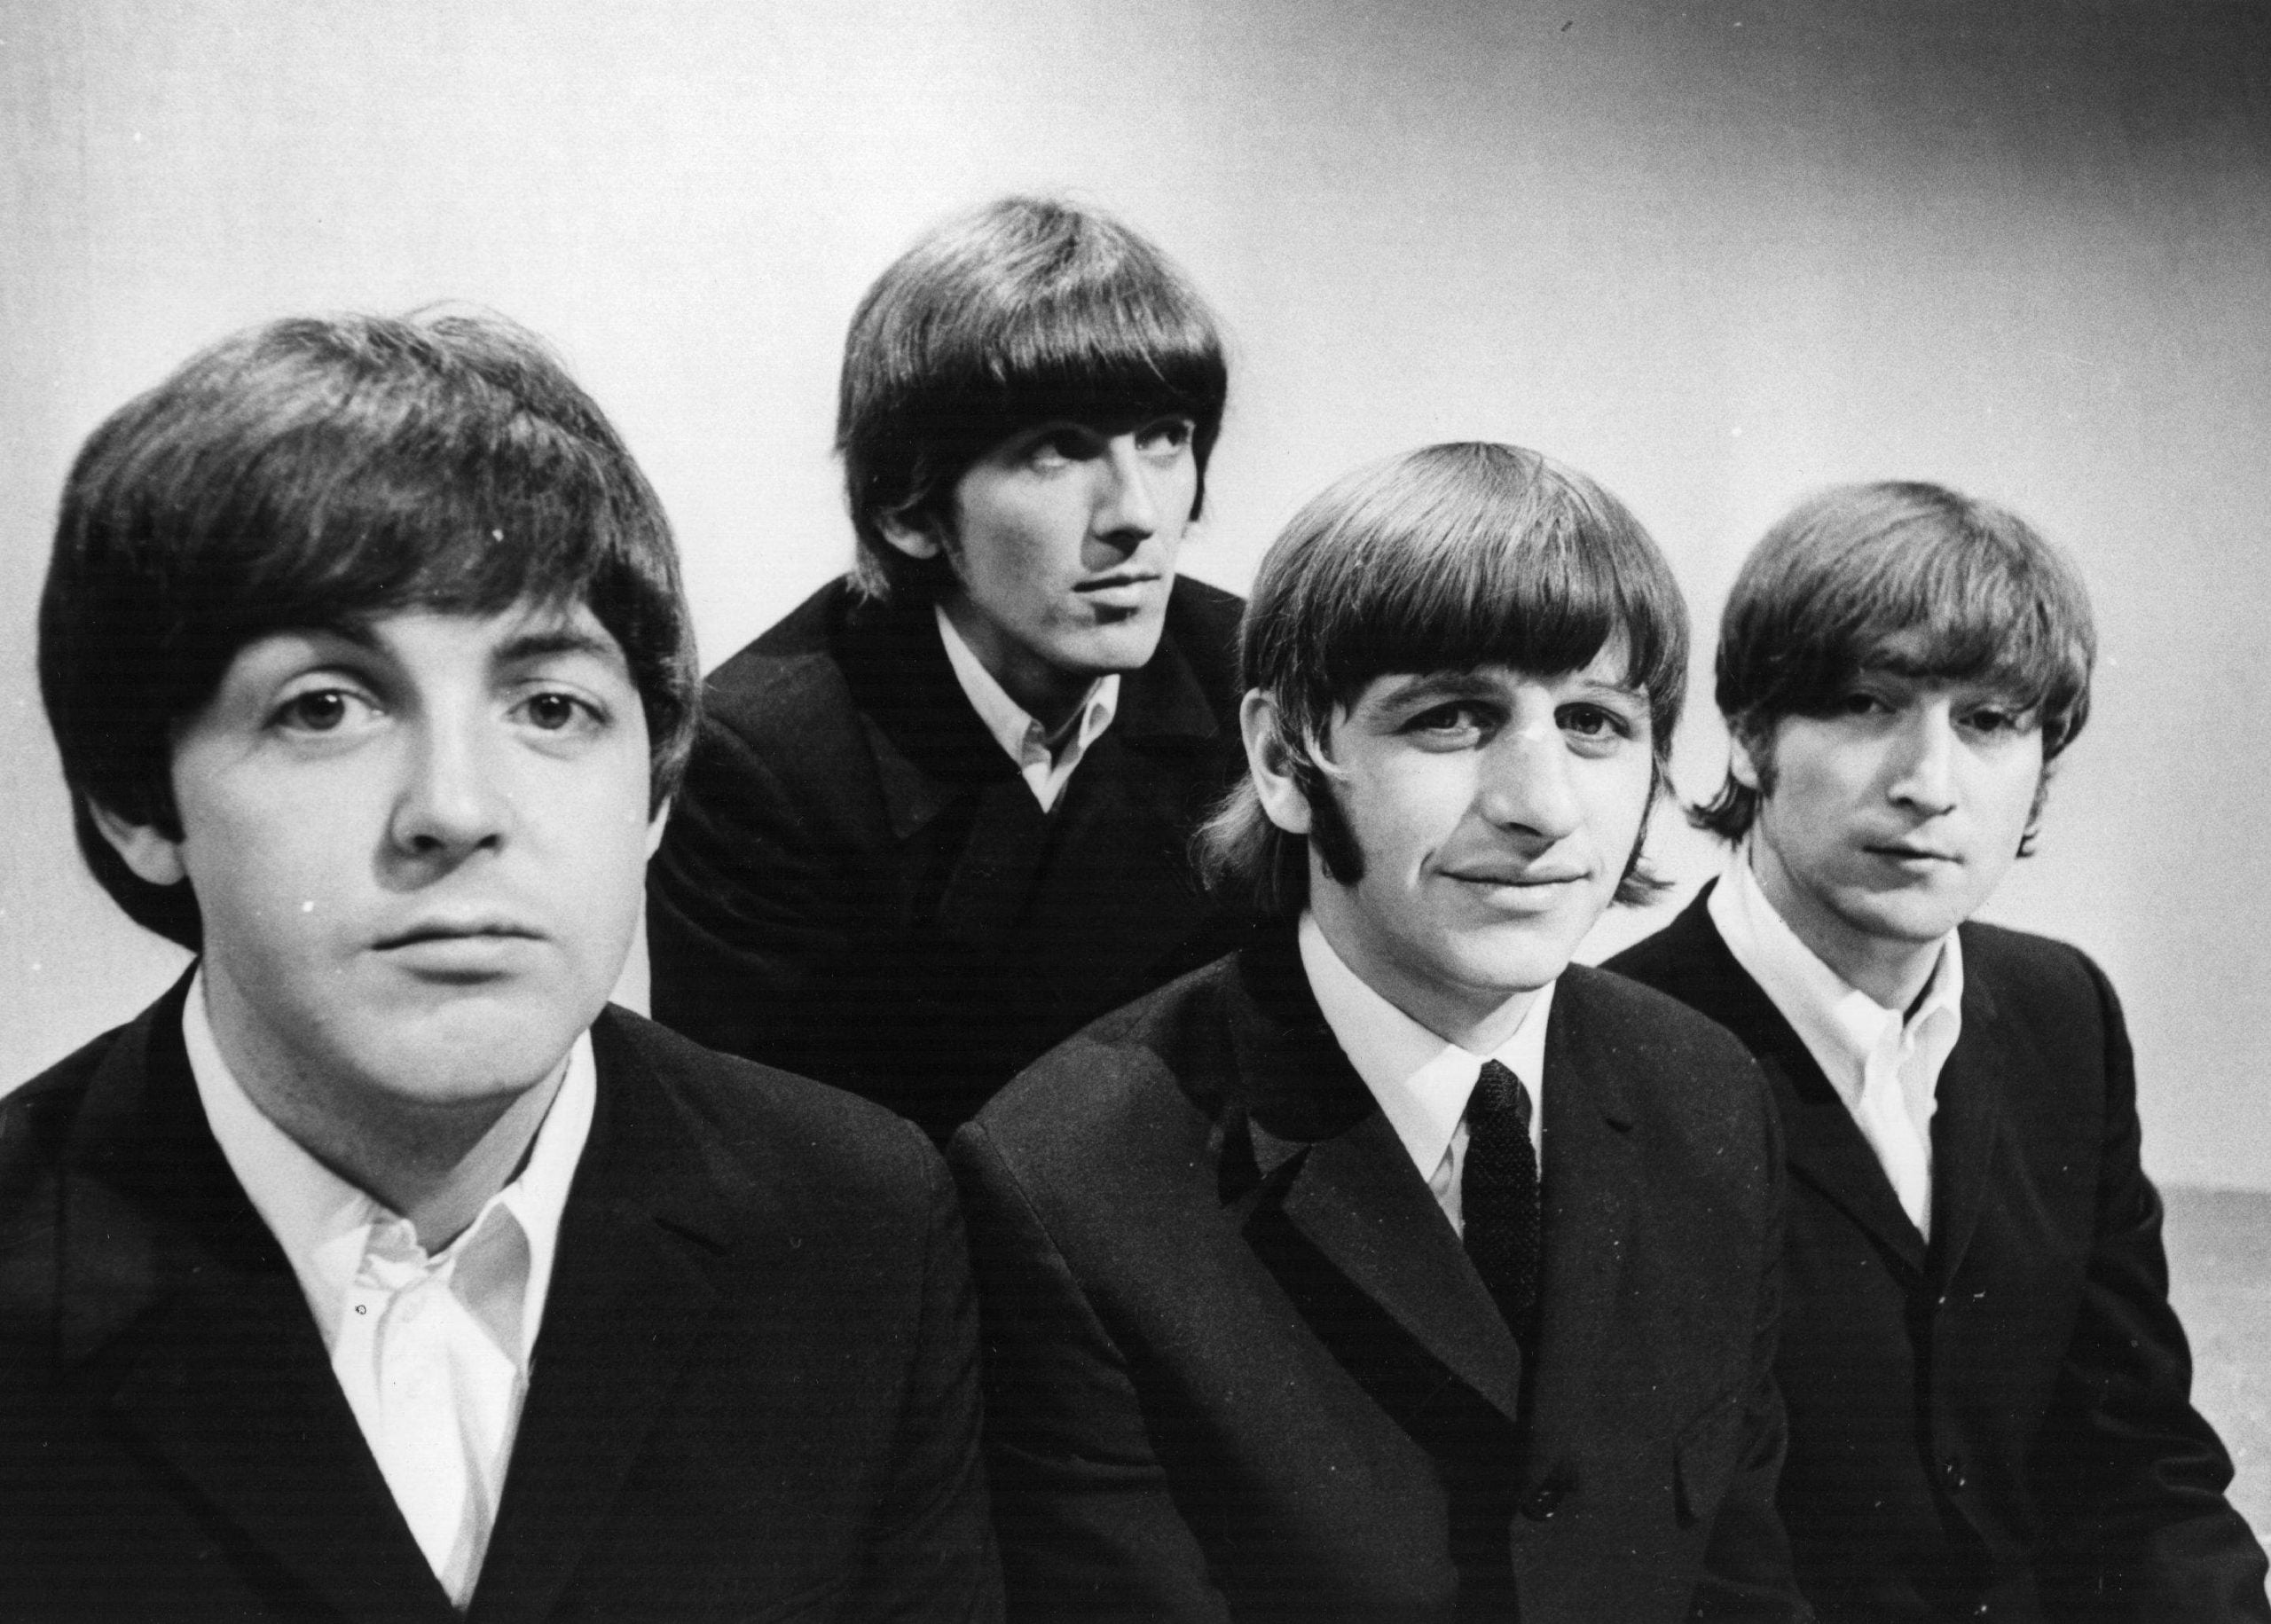 """Alan Johnson on Revolver by the Beatles: """"The greatest testament to an incredible phenomenon"""""""